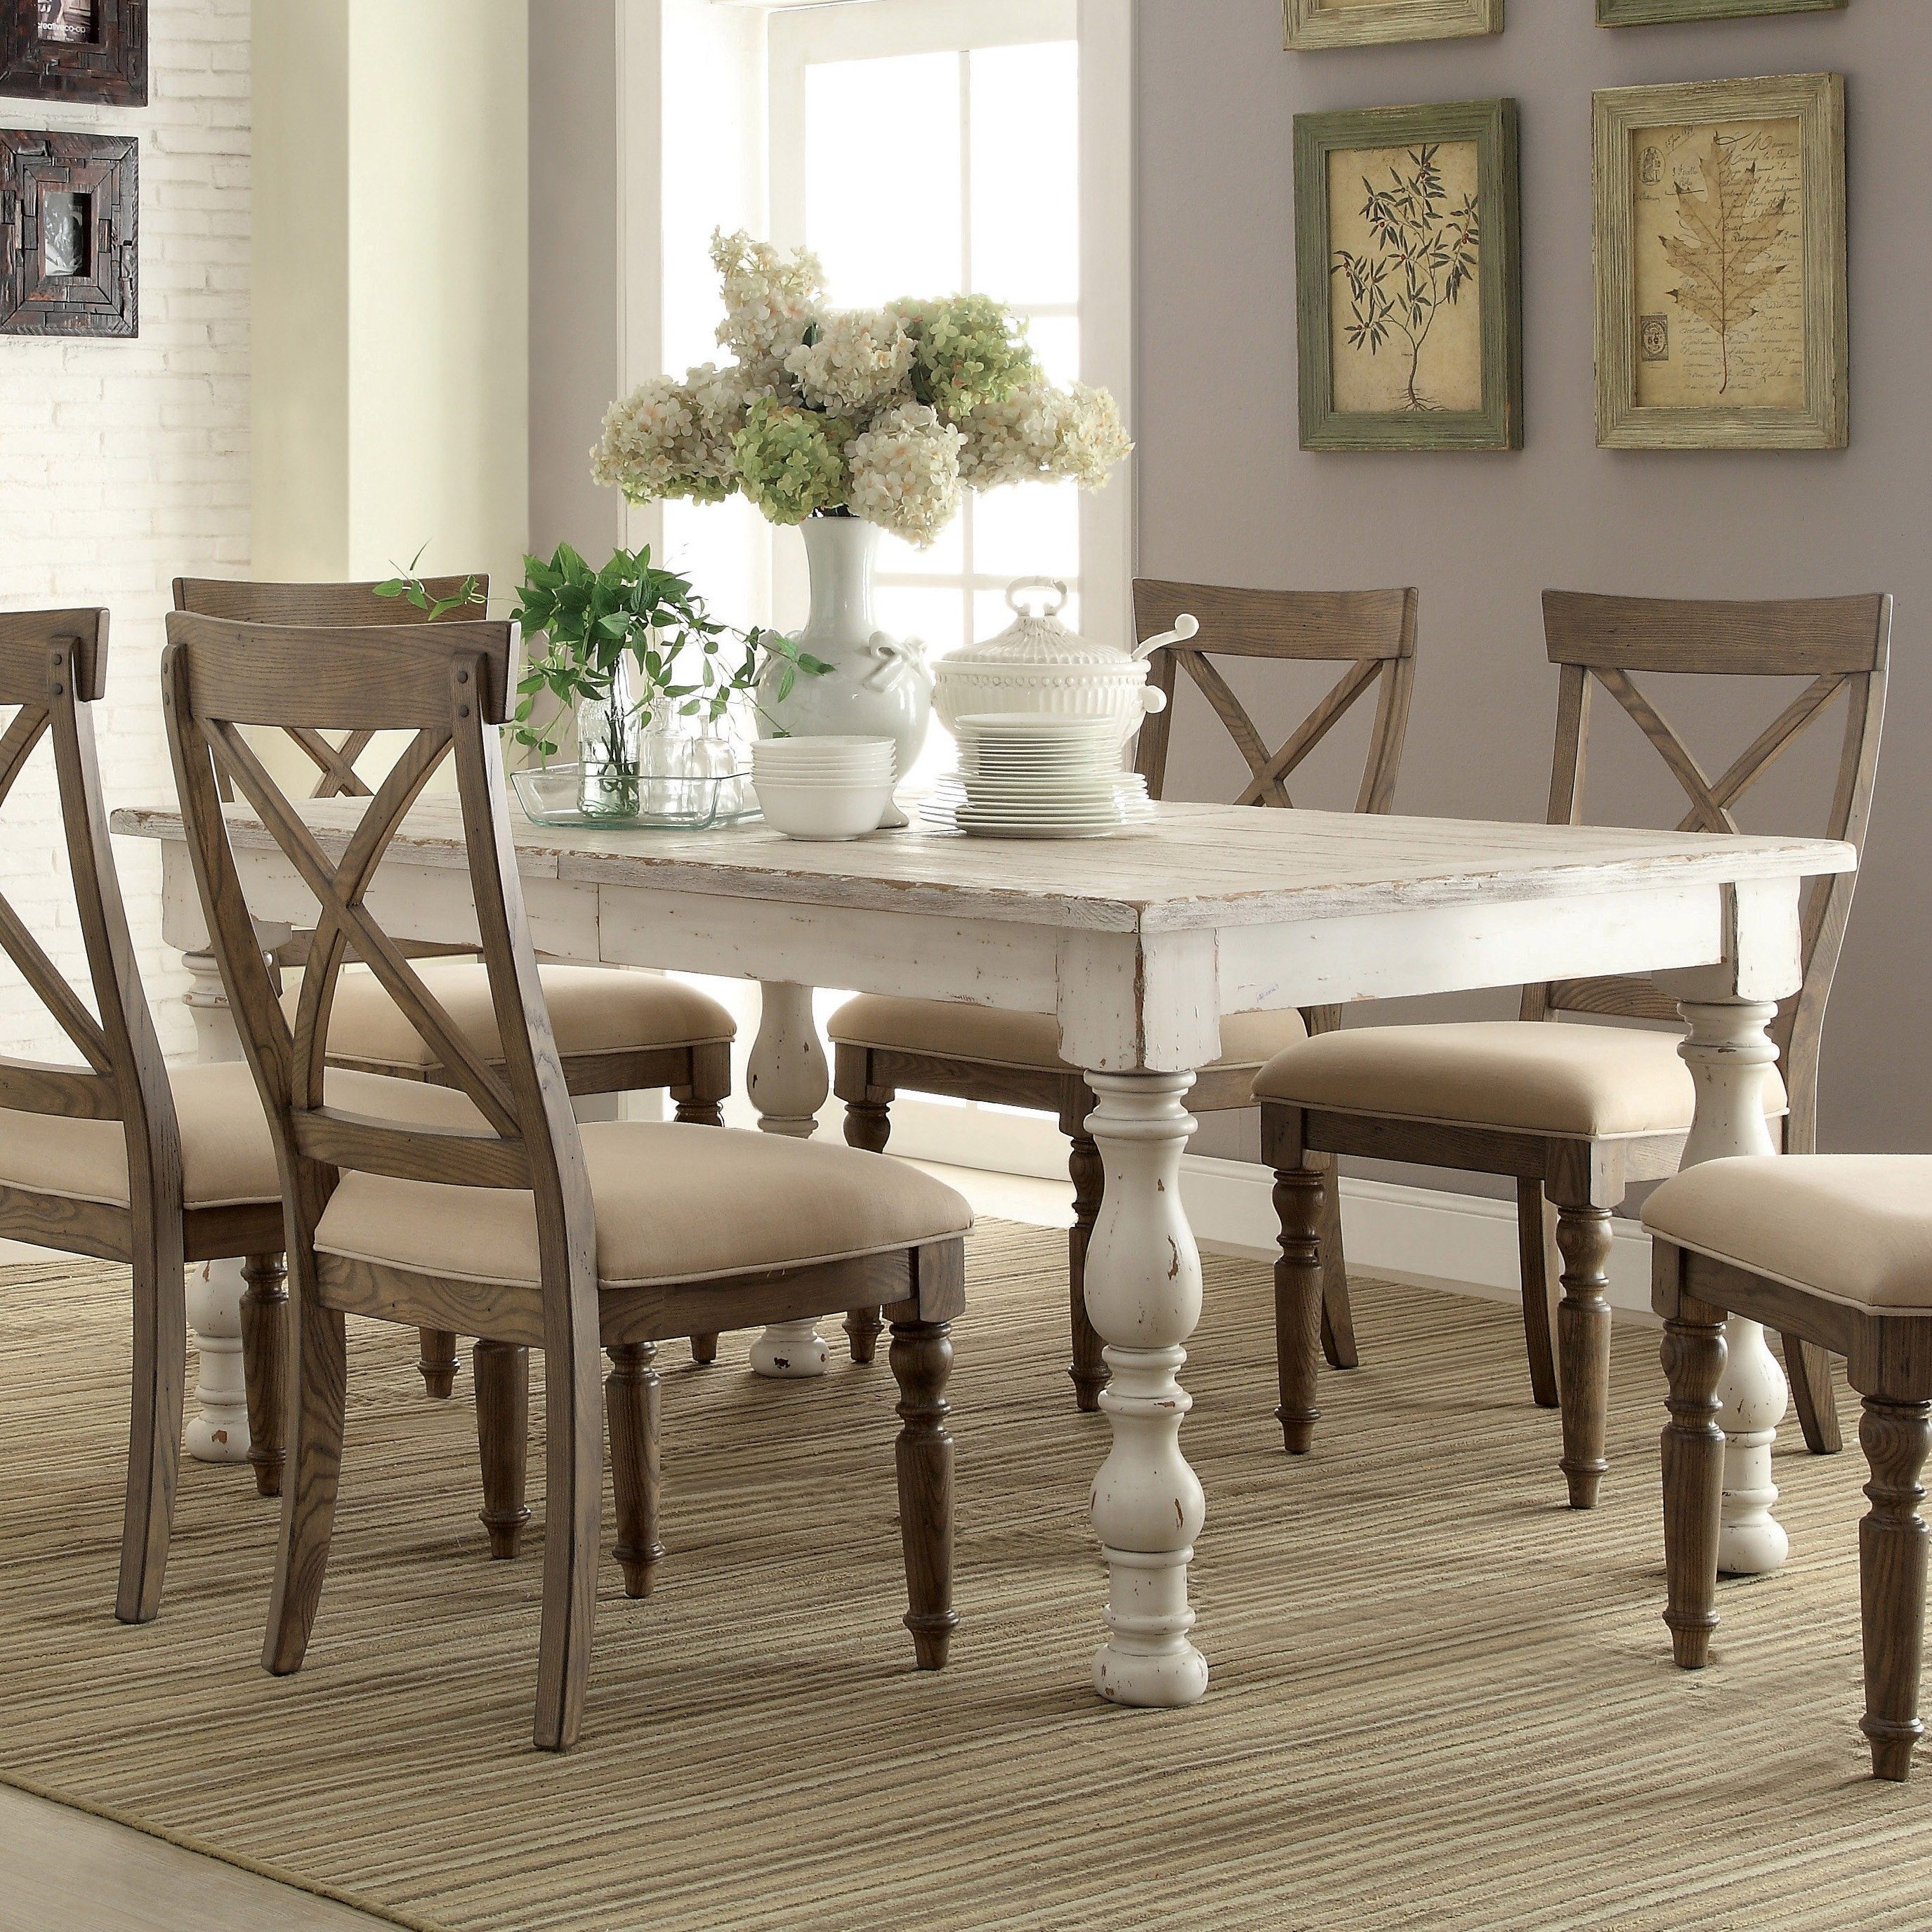 Room dining room groups mestler bisque rectangular dining room table - Aberdeen Wood Rectangular Dining Table And Chairs In Aberdeen Wood Rectangular Dining Table And Chairs In Dining Room Table